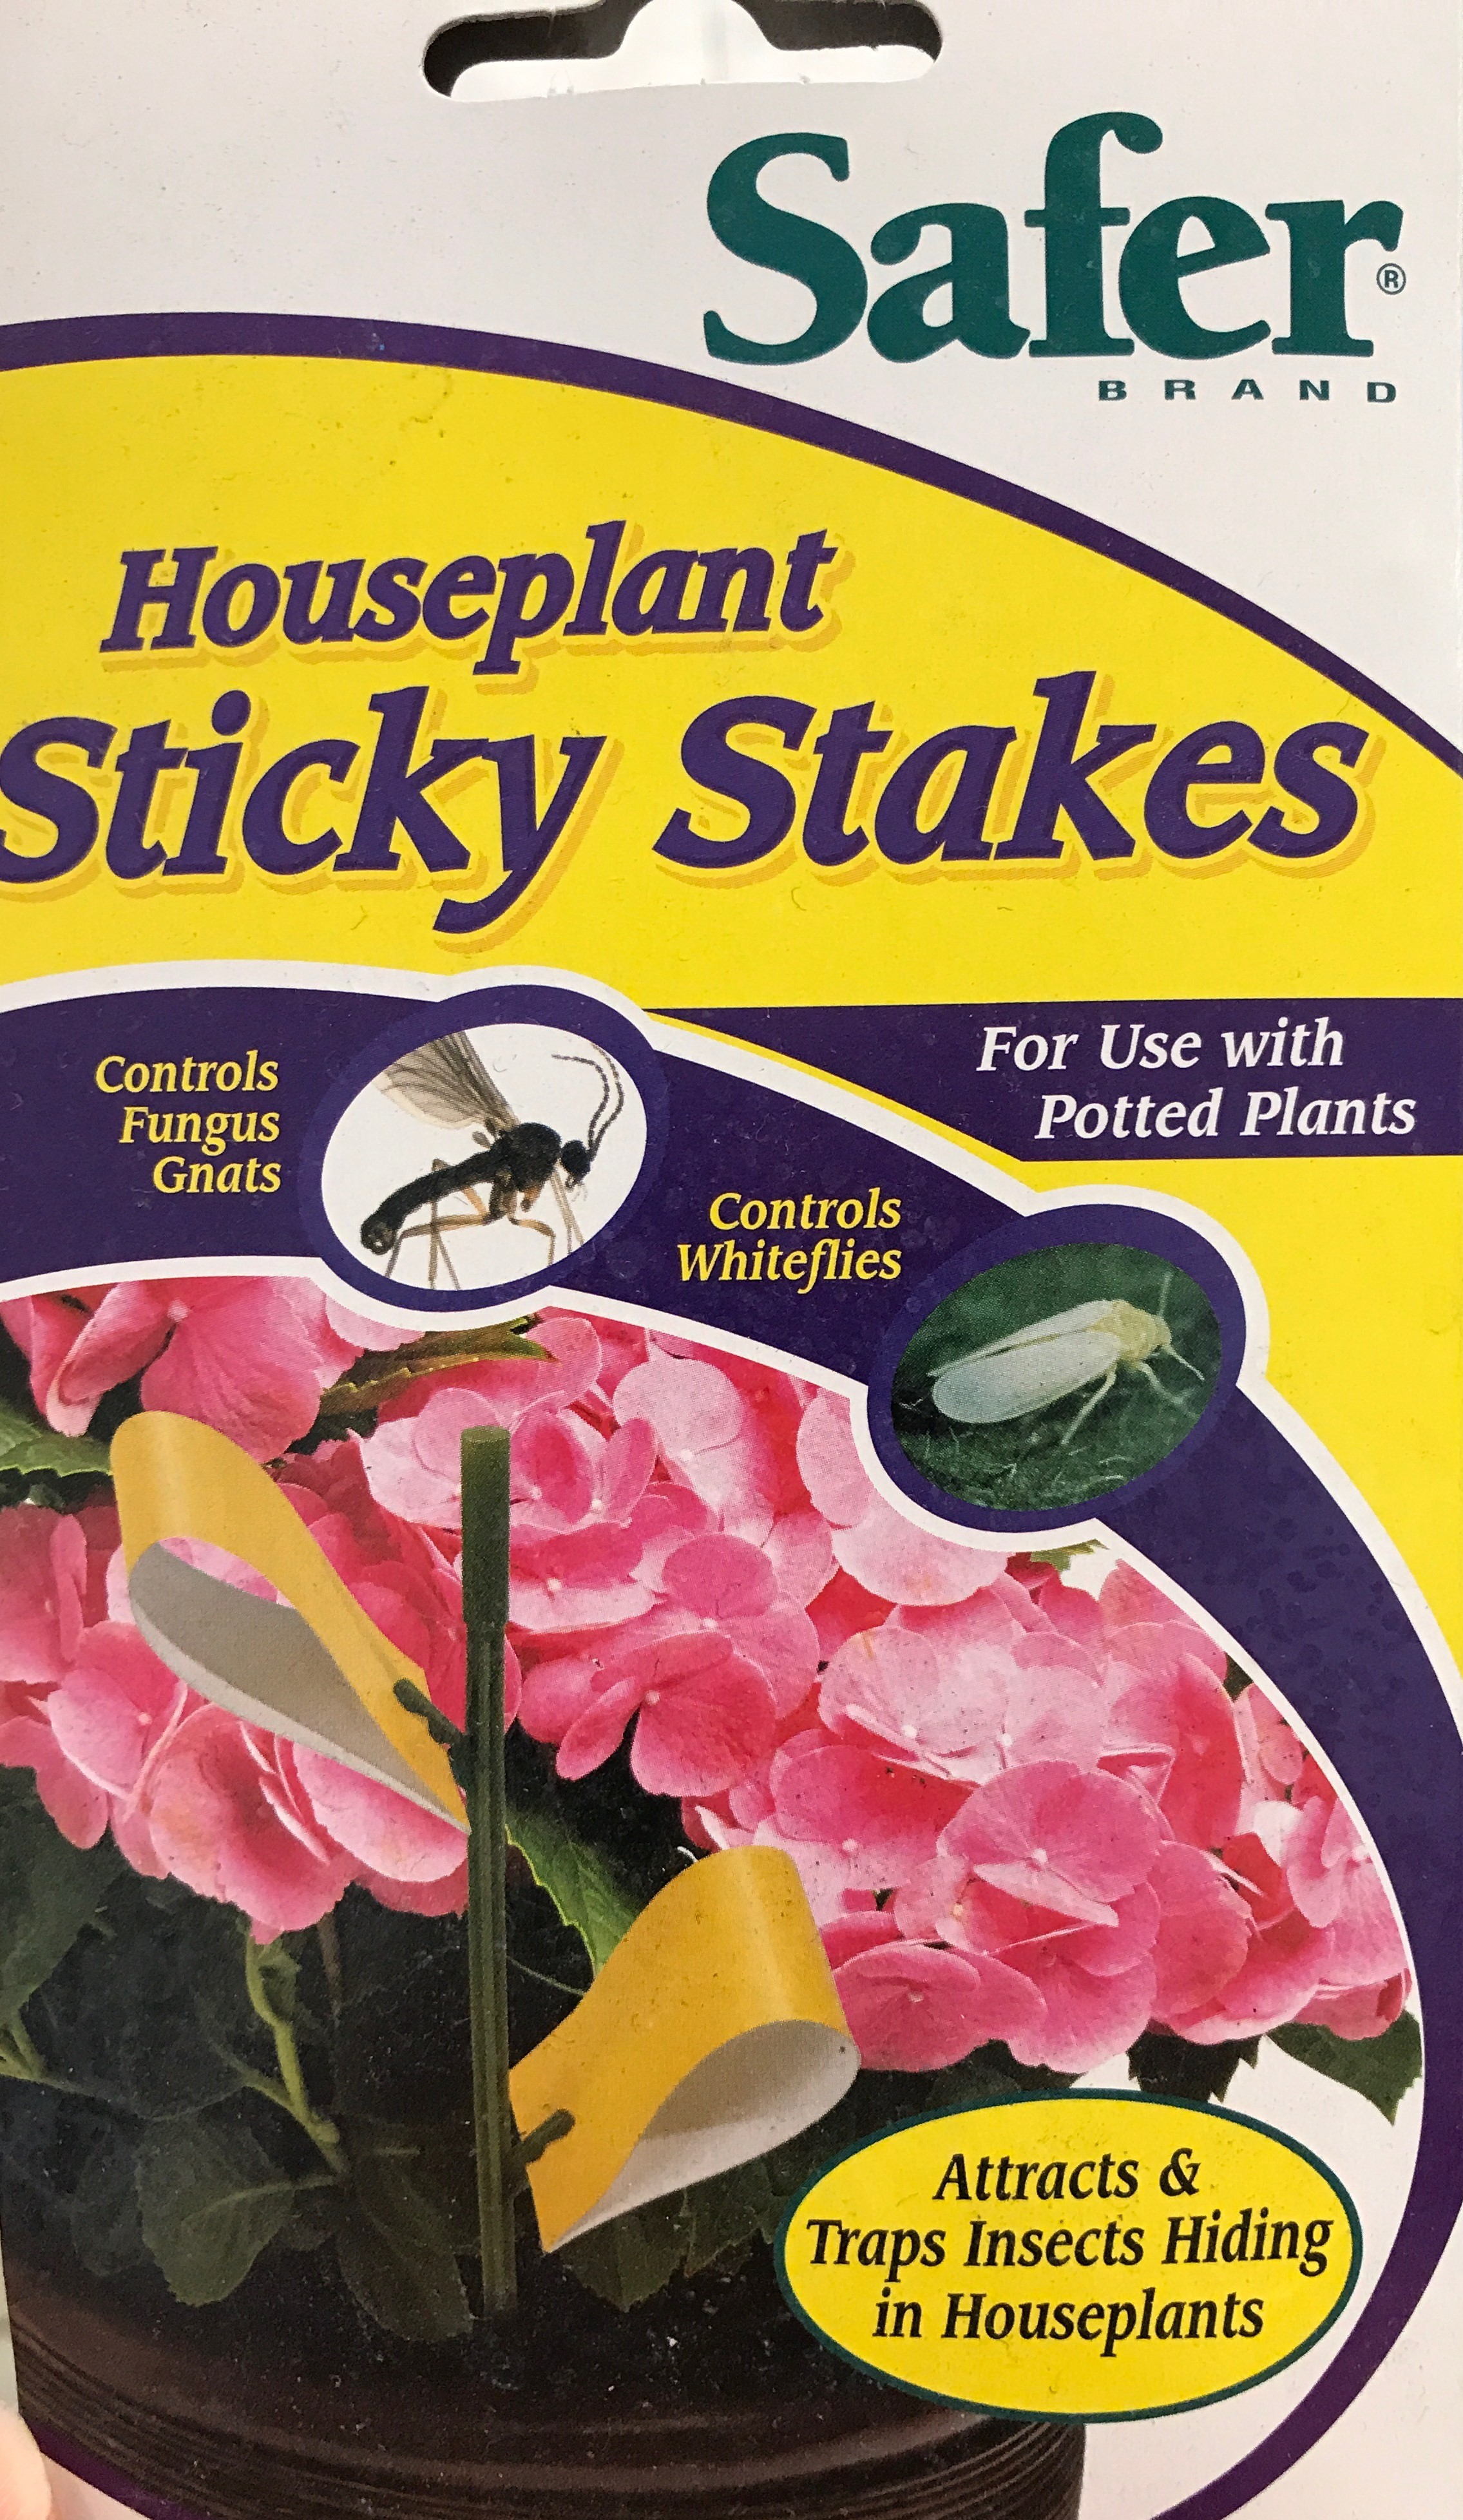 Sticky stakes - Effective organic traps